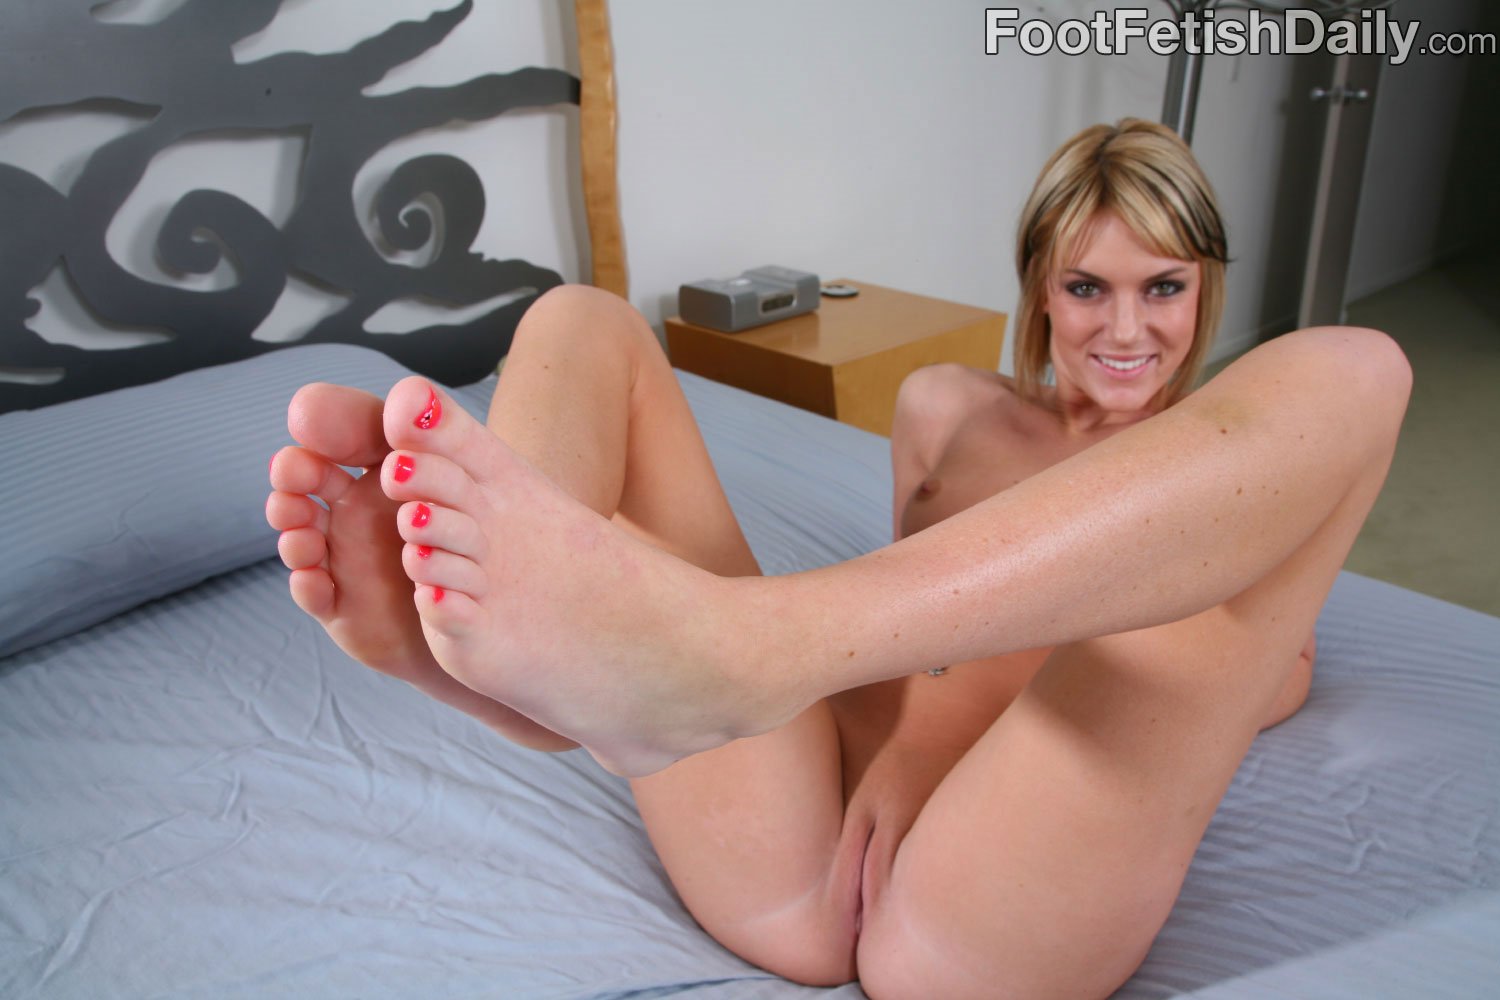 feet fetish chicks